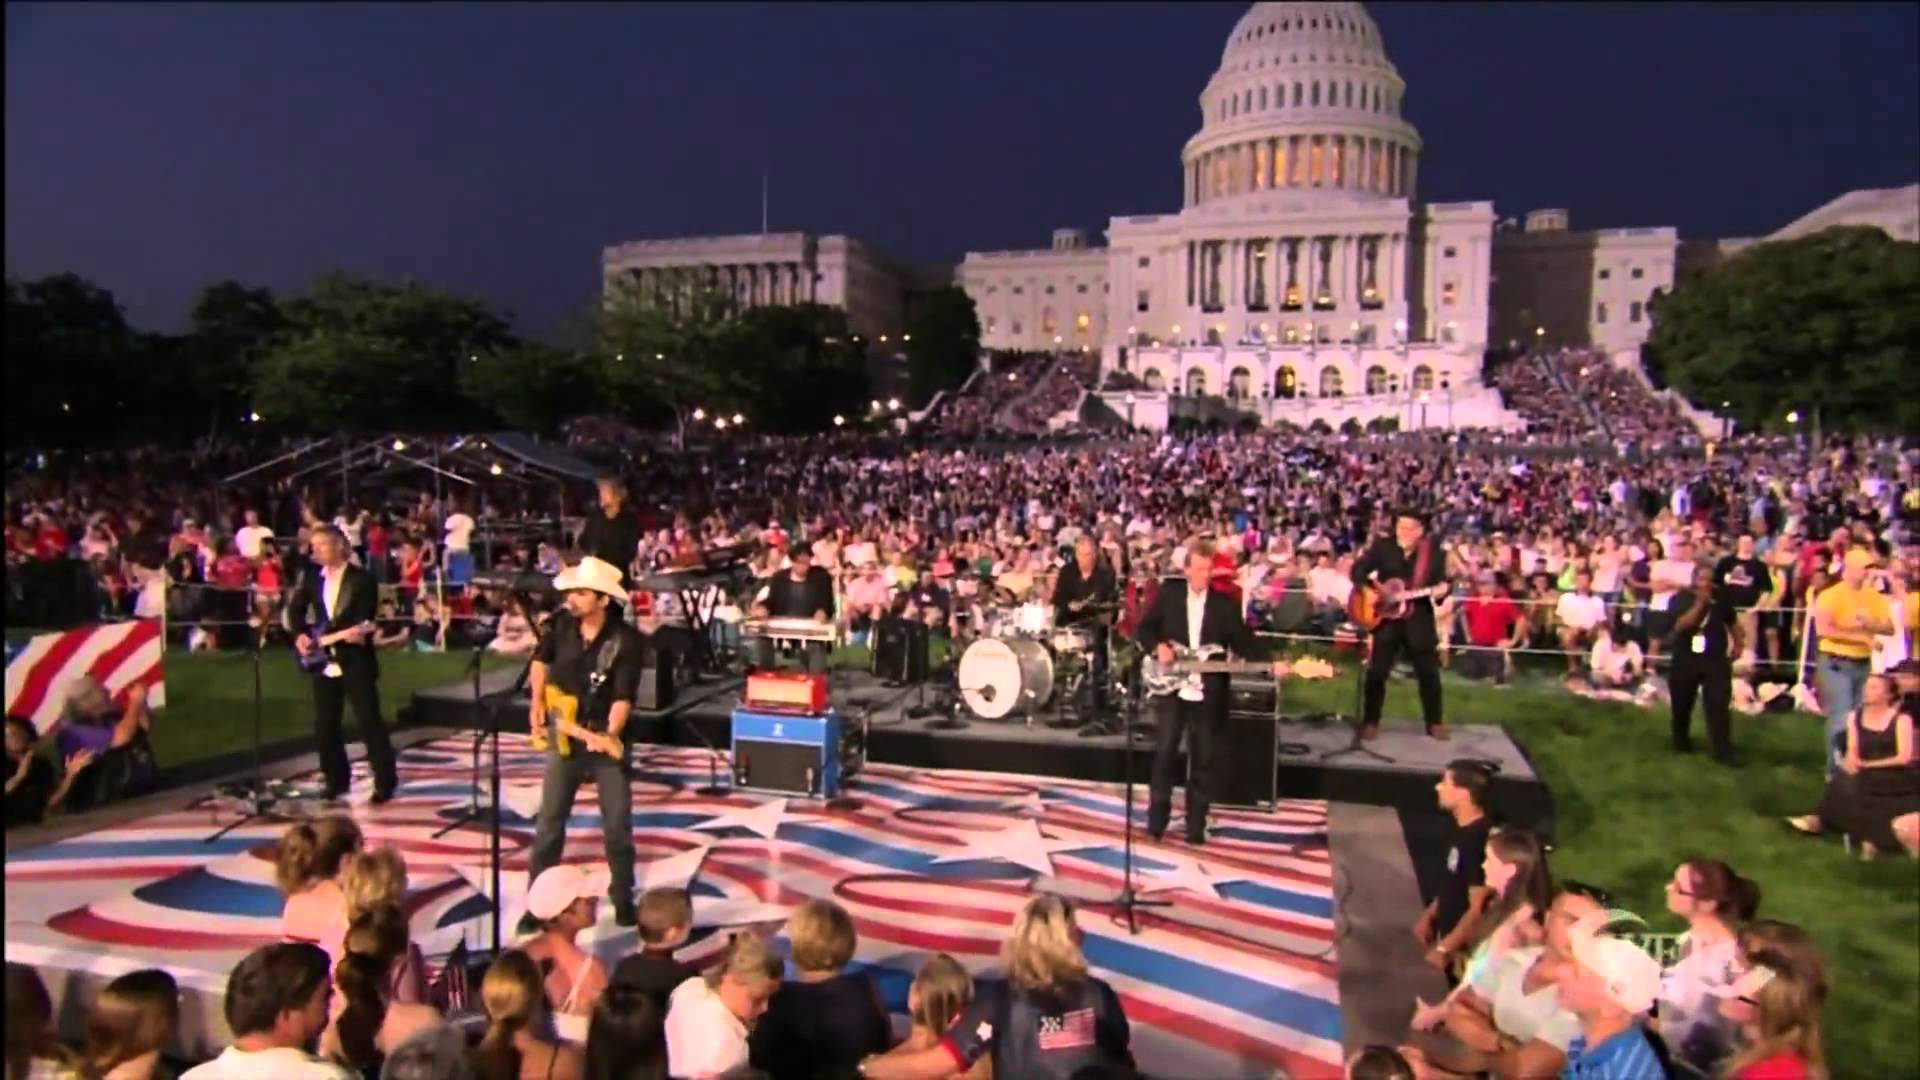 5 Free Things to Do in Washington D.C. on Memorial Day Weekend - The National Memorial Day Concert